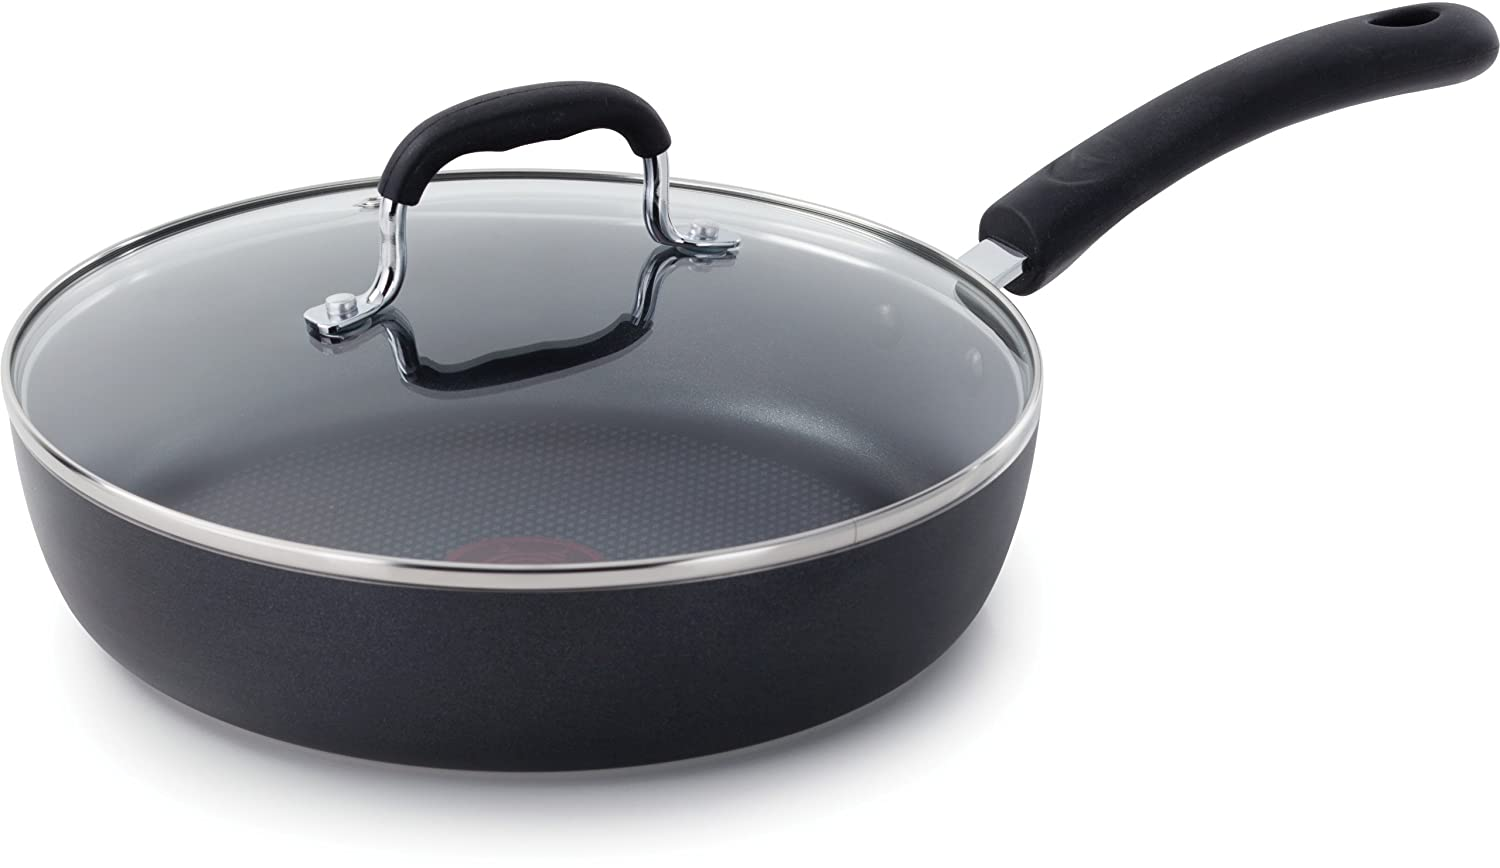 T-fal E93897 Professional Total Nonstick Thermo-Spot Heat Indicator Fry Pan with Glass Lid, 10-Inch, Black